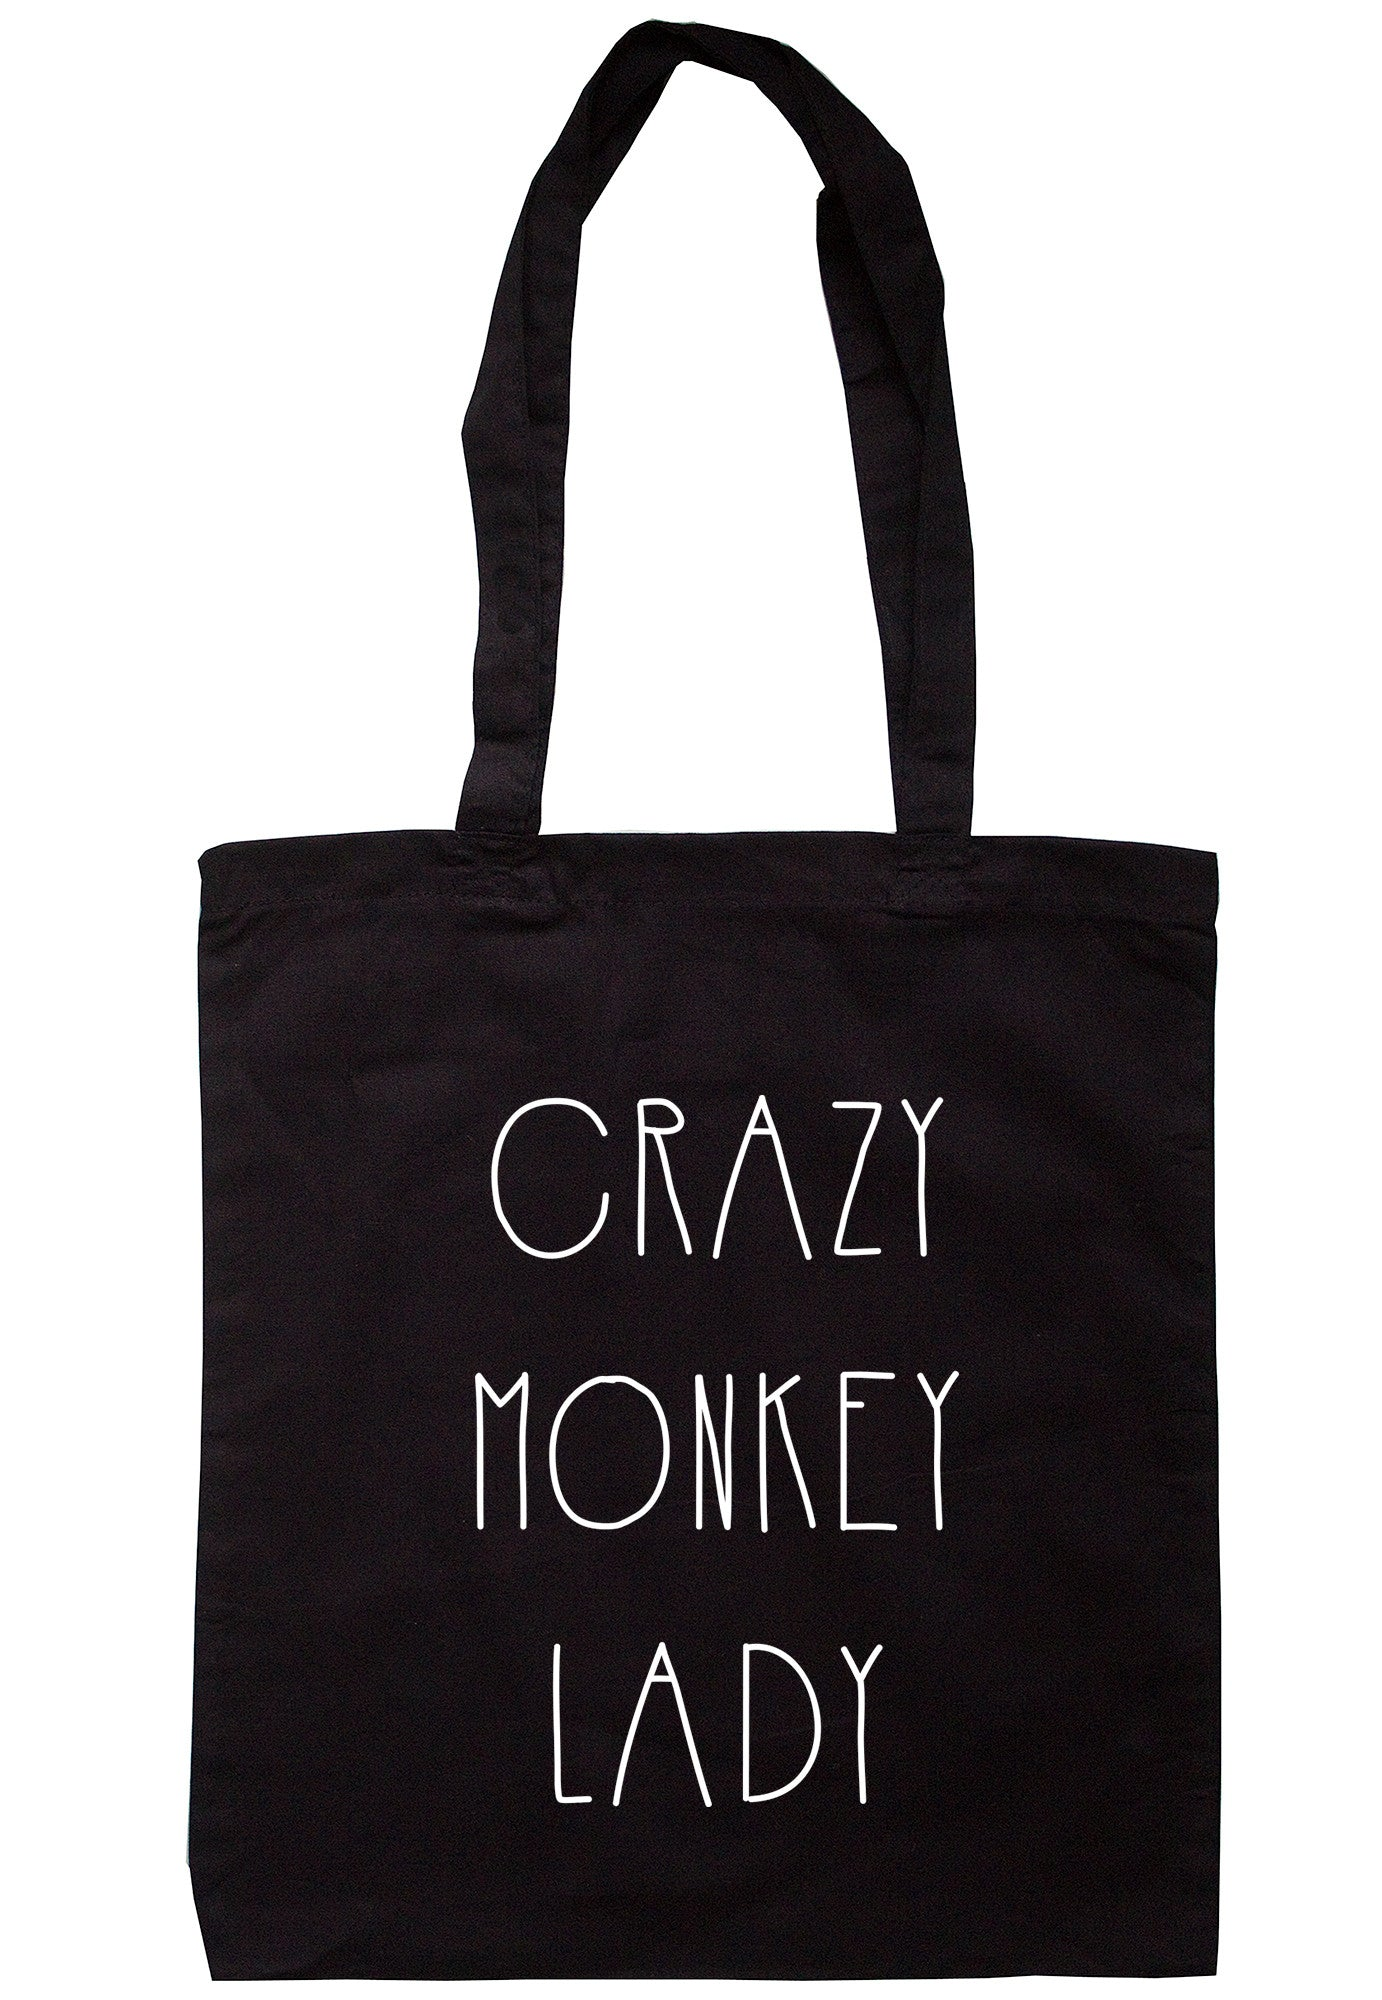 Crazy Monkey Lady Tote Bag TB0384 - Illustrated Identity Ltd.